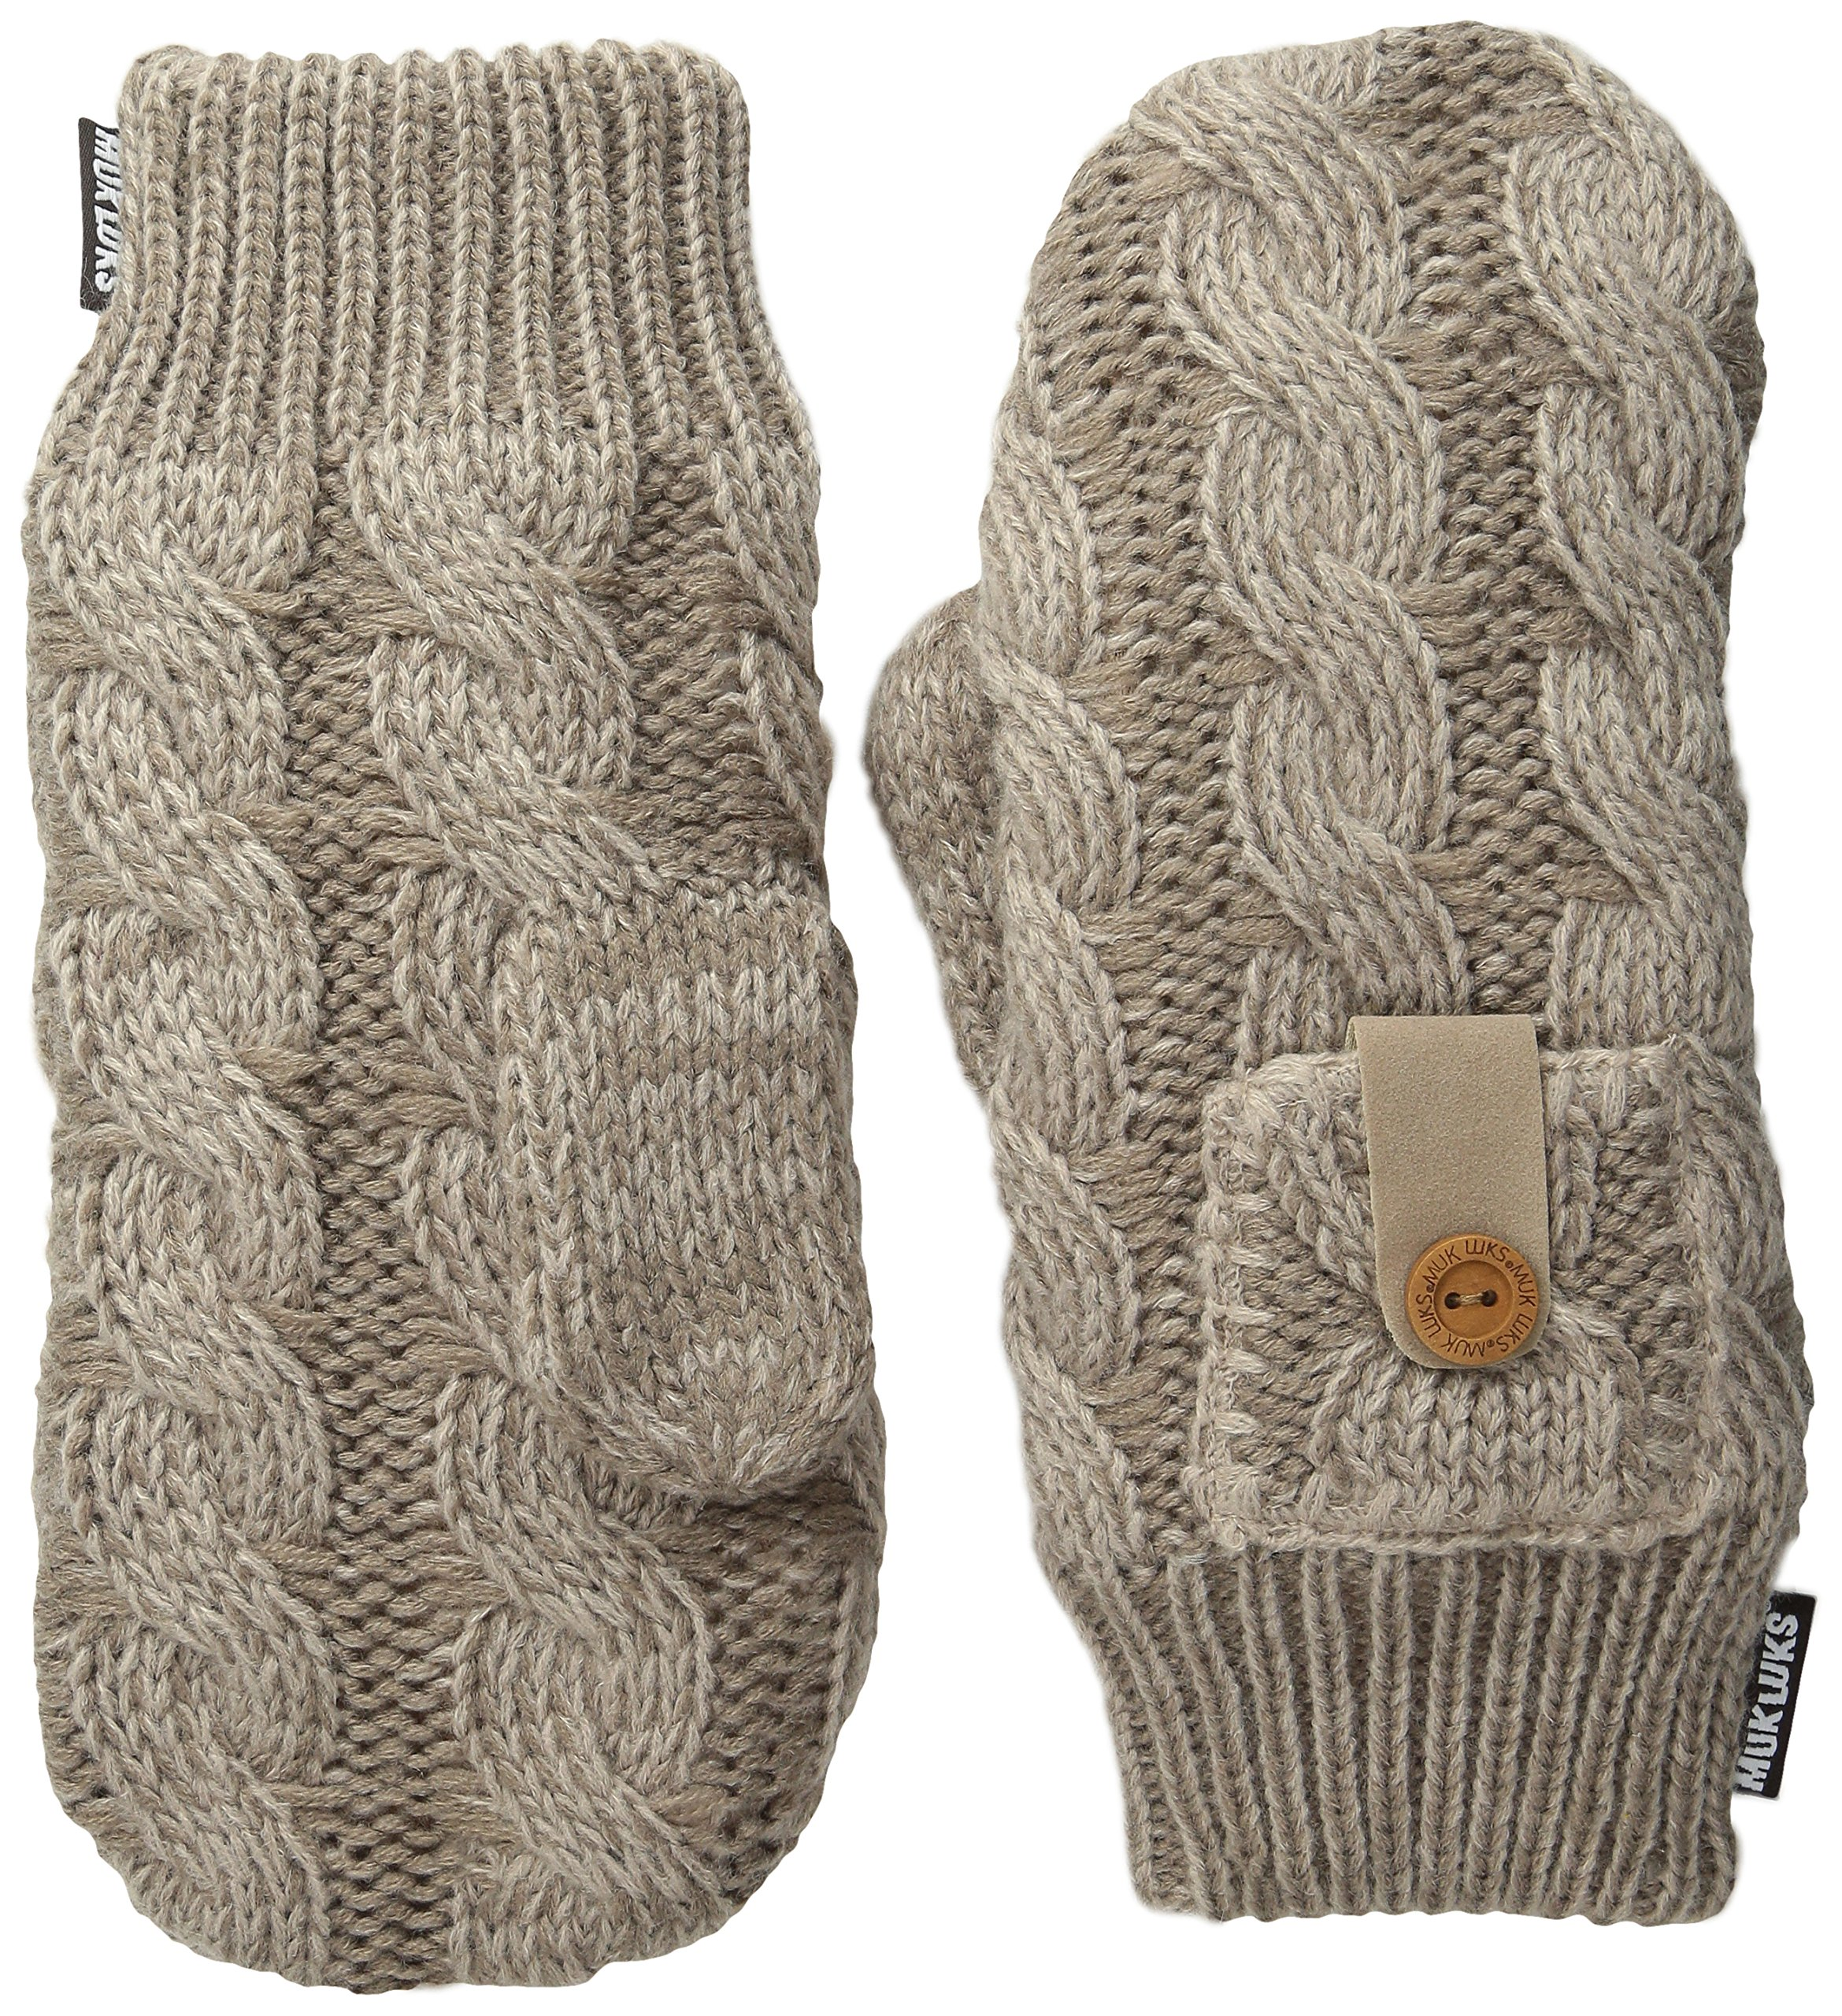 Muk Luks Women's Winter Mittens, Taupe, One Size